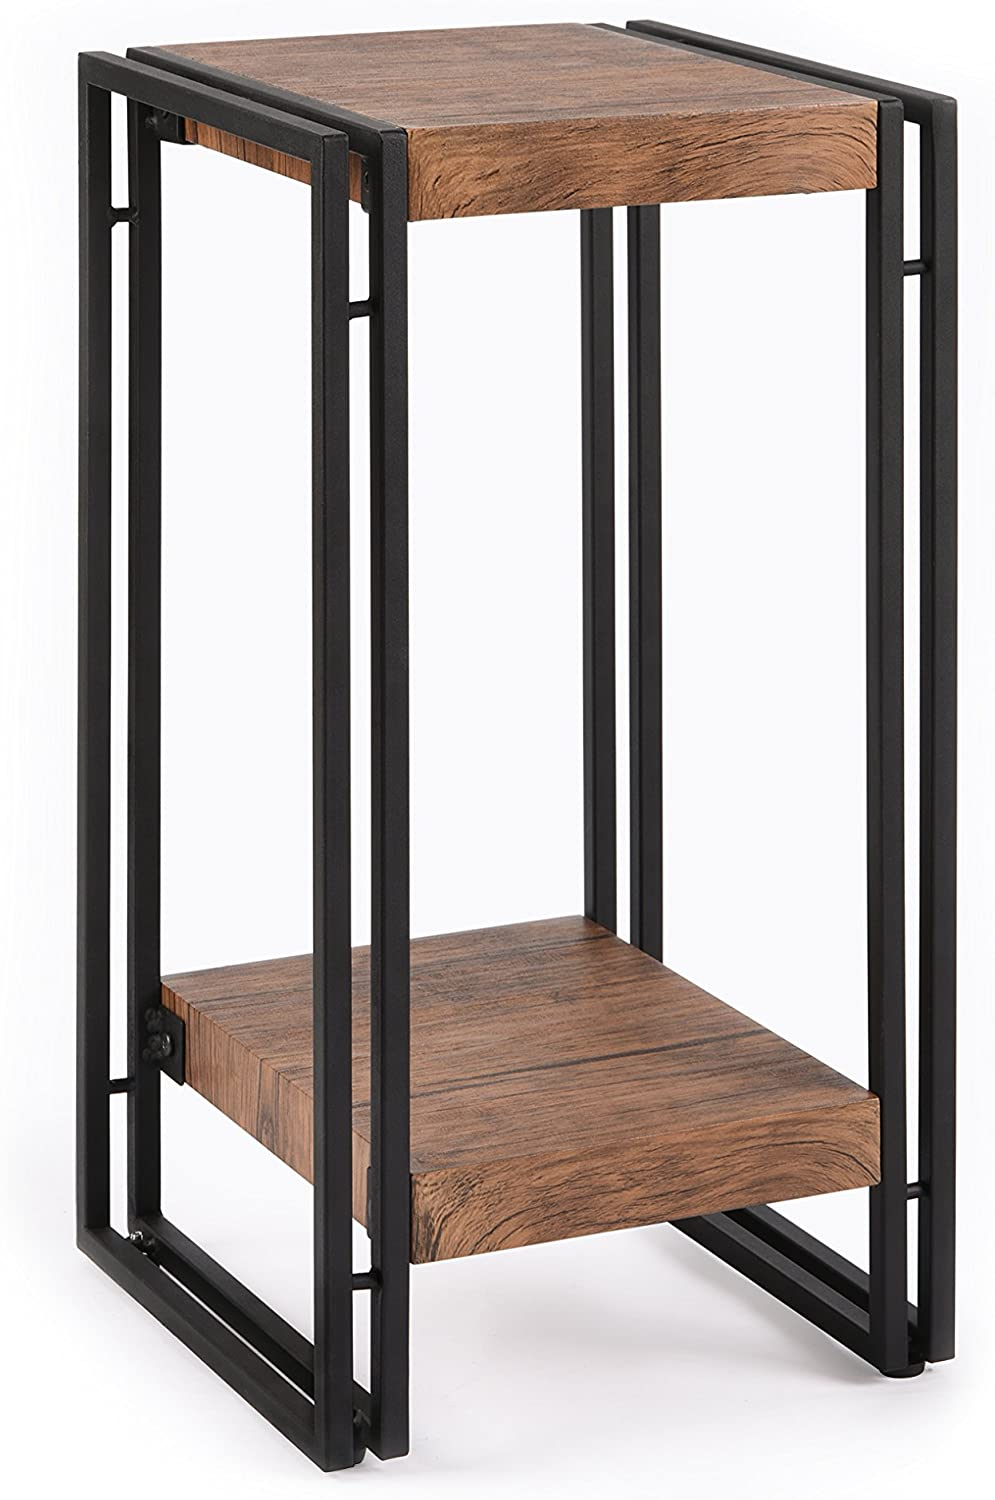 FIVEGIVEN Accent Side Table for Small Spaces End Table for Living Room Bedroom Rustic Industrial Metal, Brown